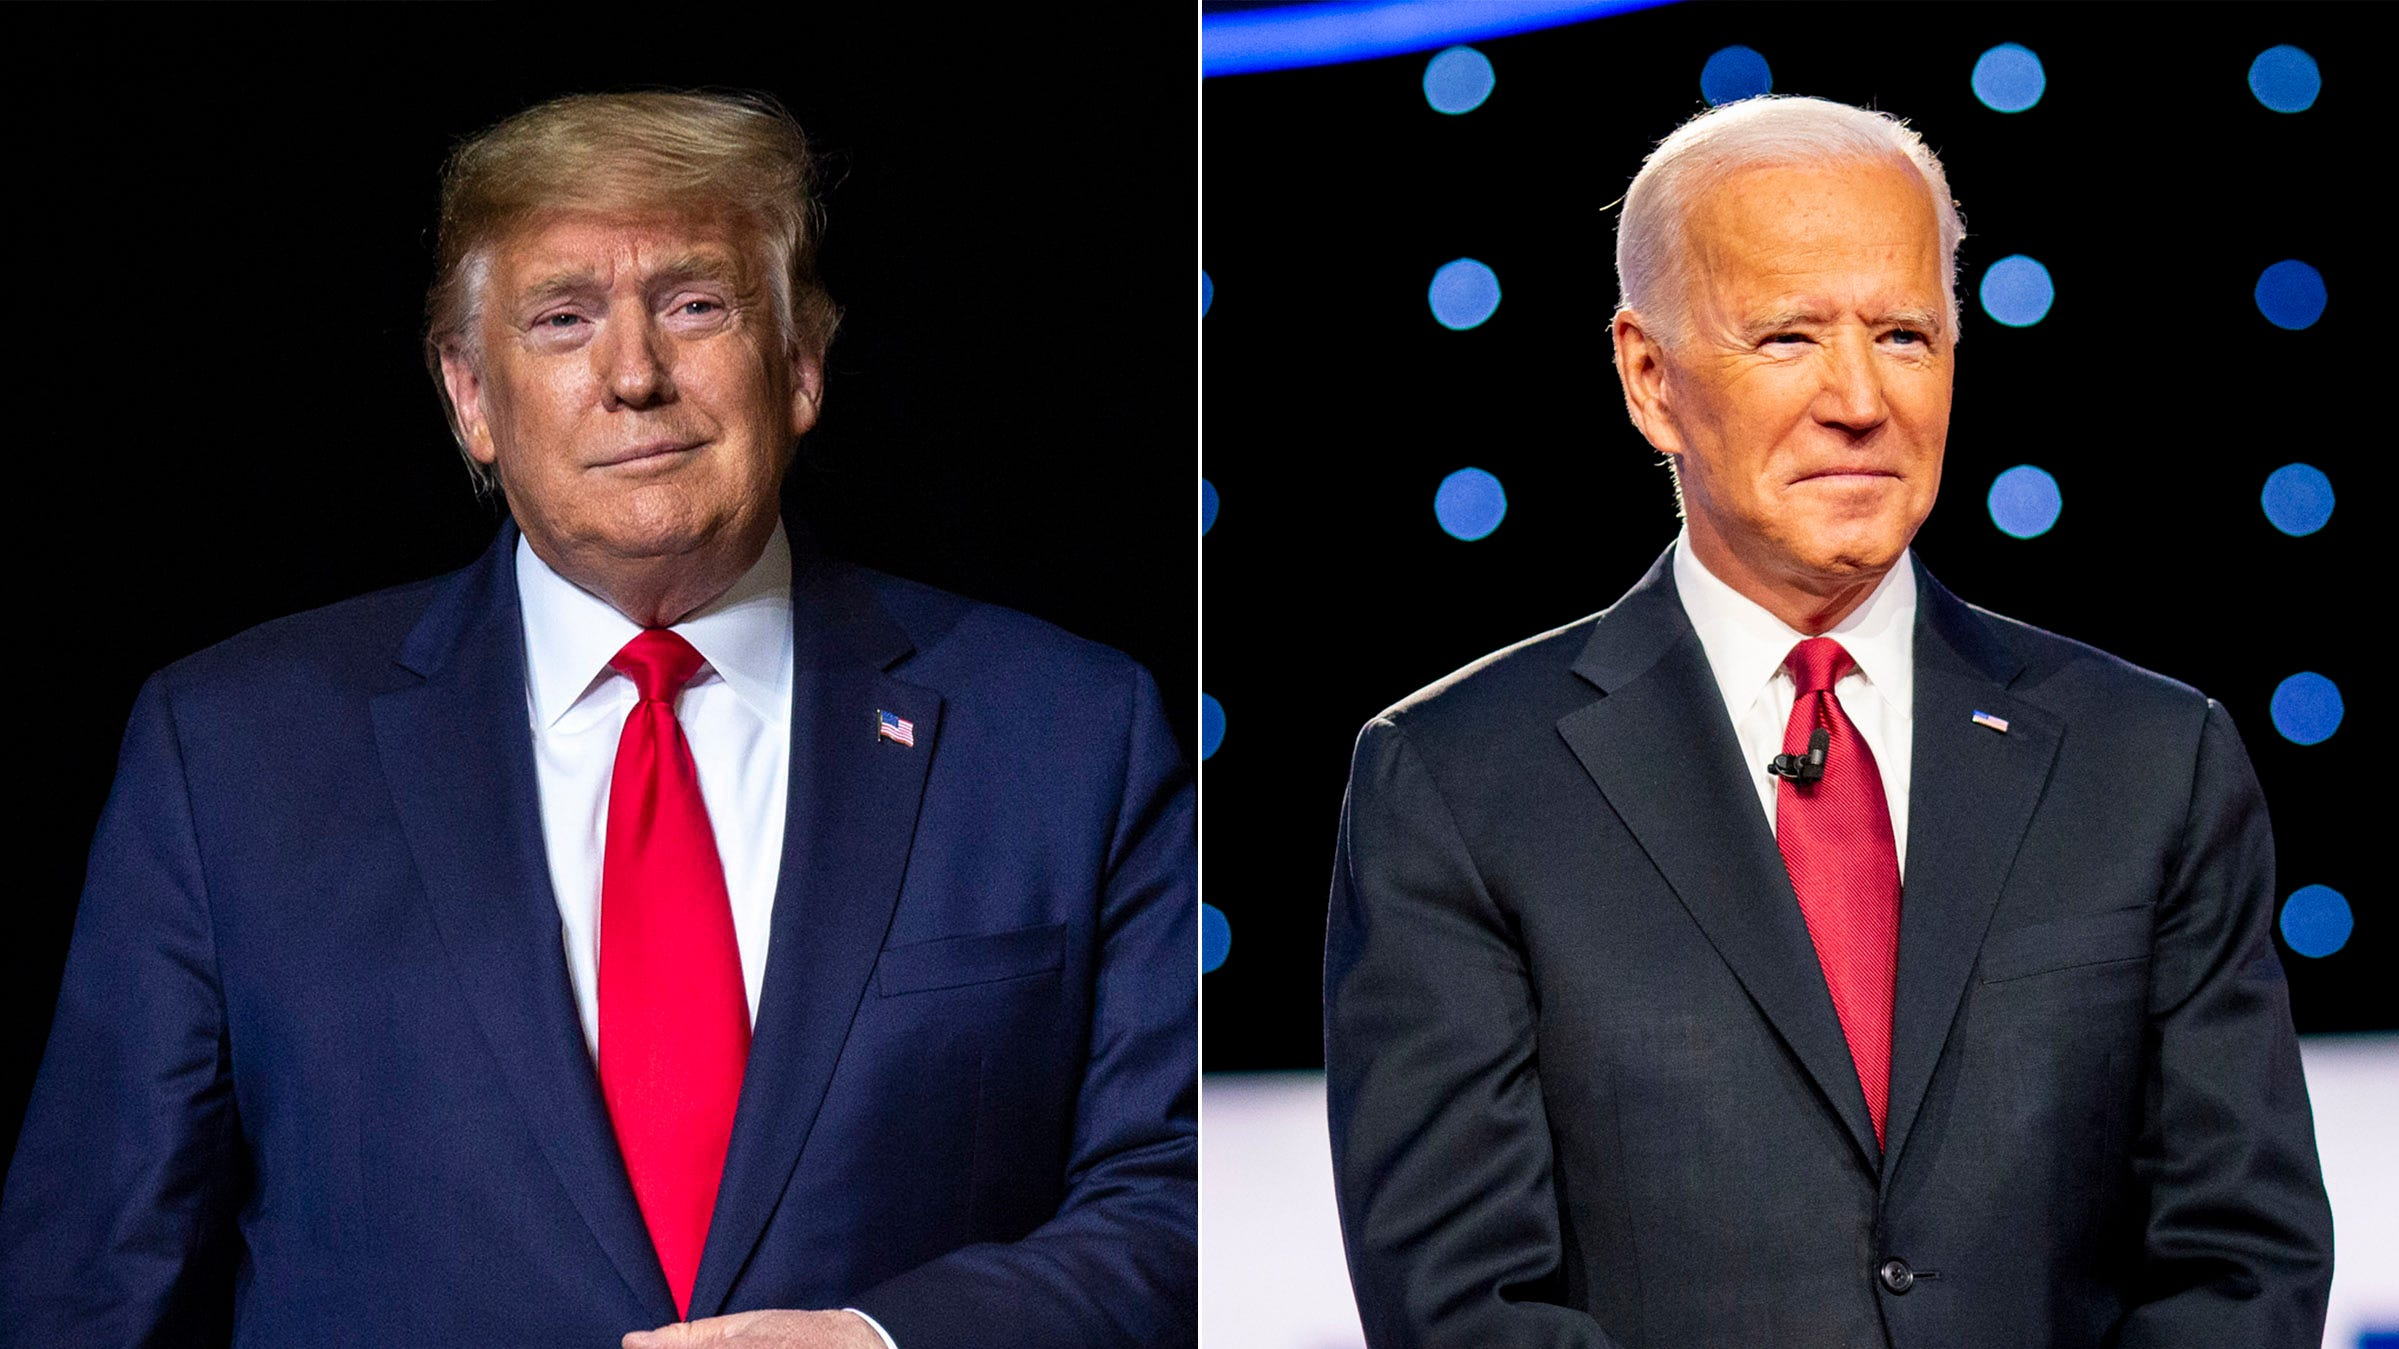 Poll: More pick Trump over Joe Biden to win presidential debates